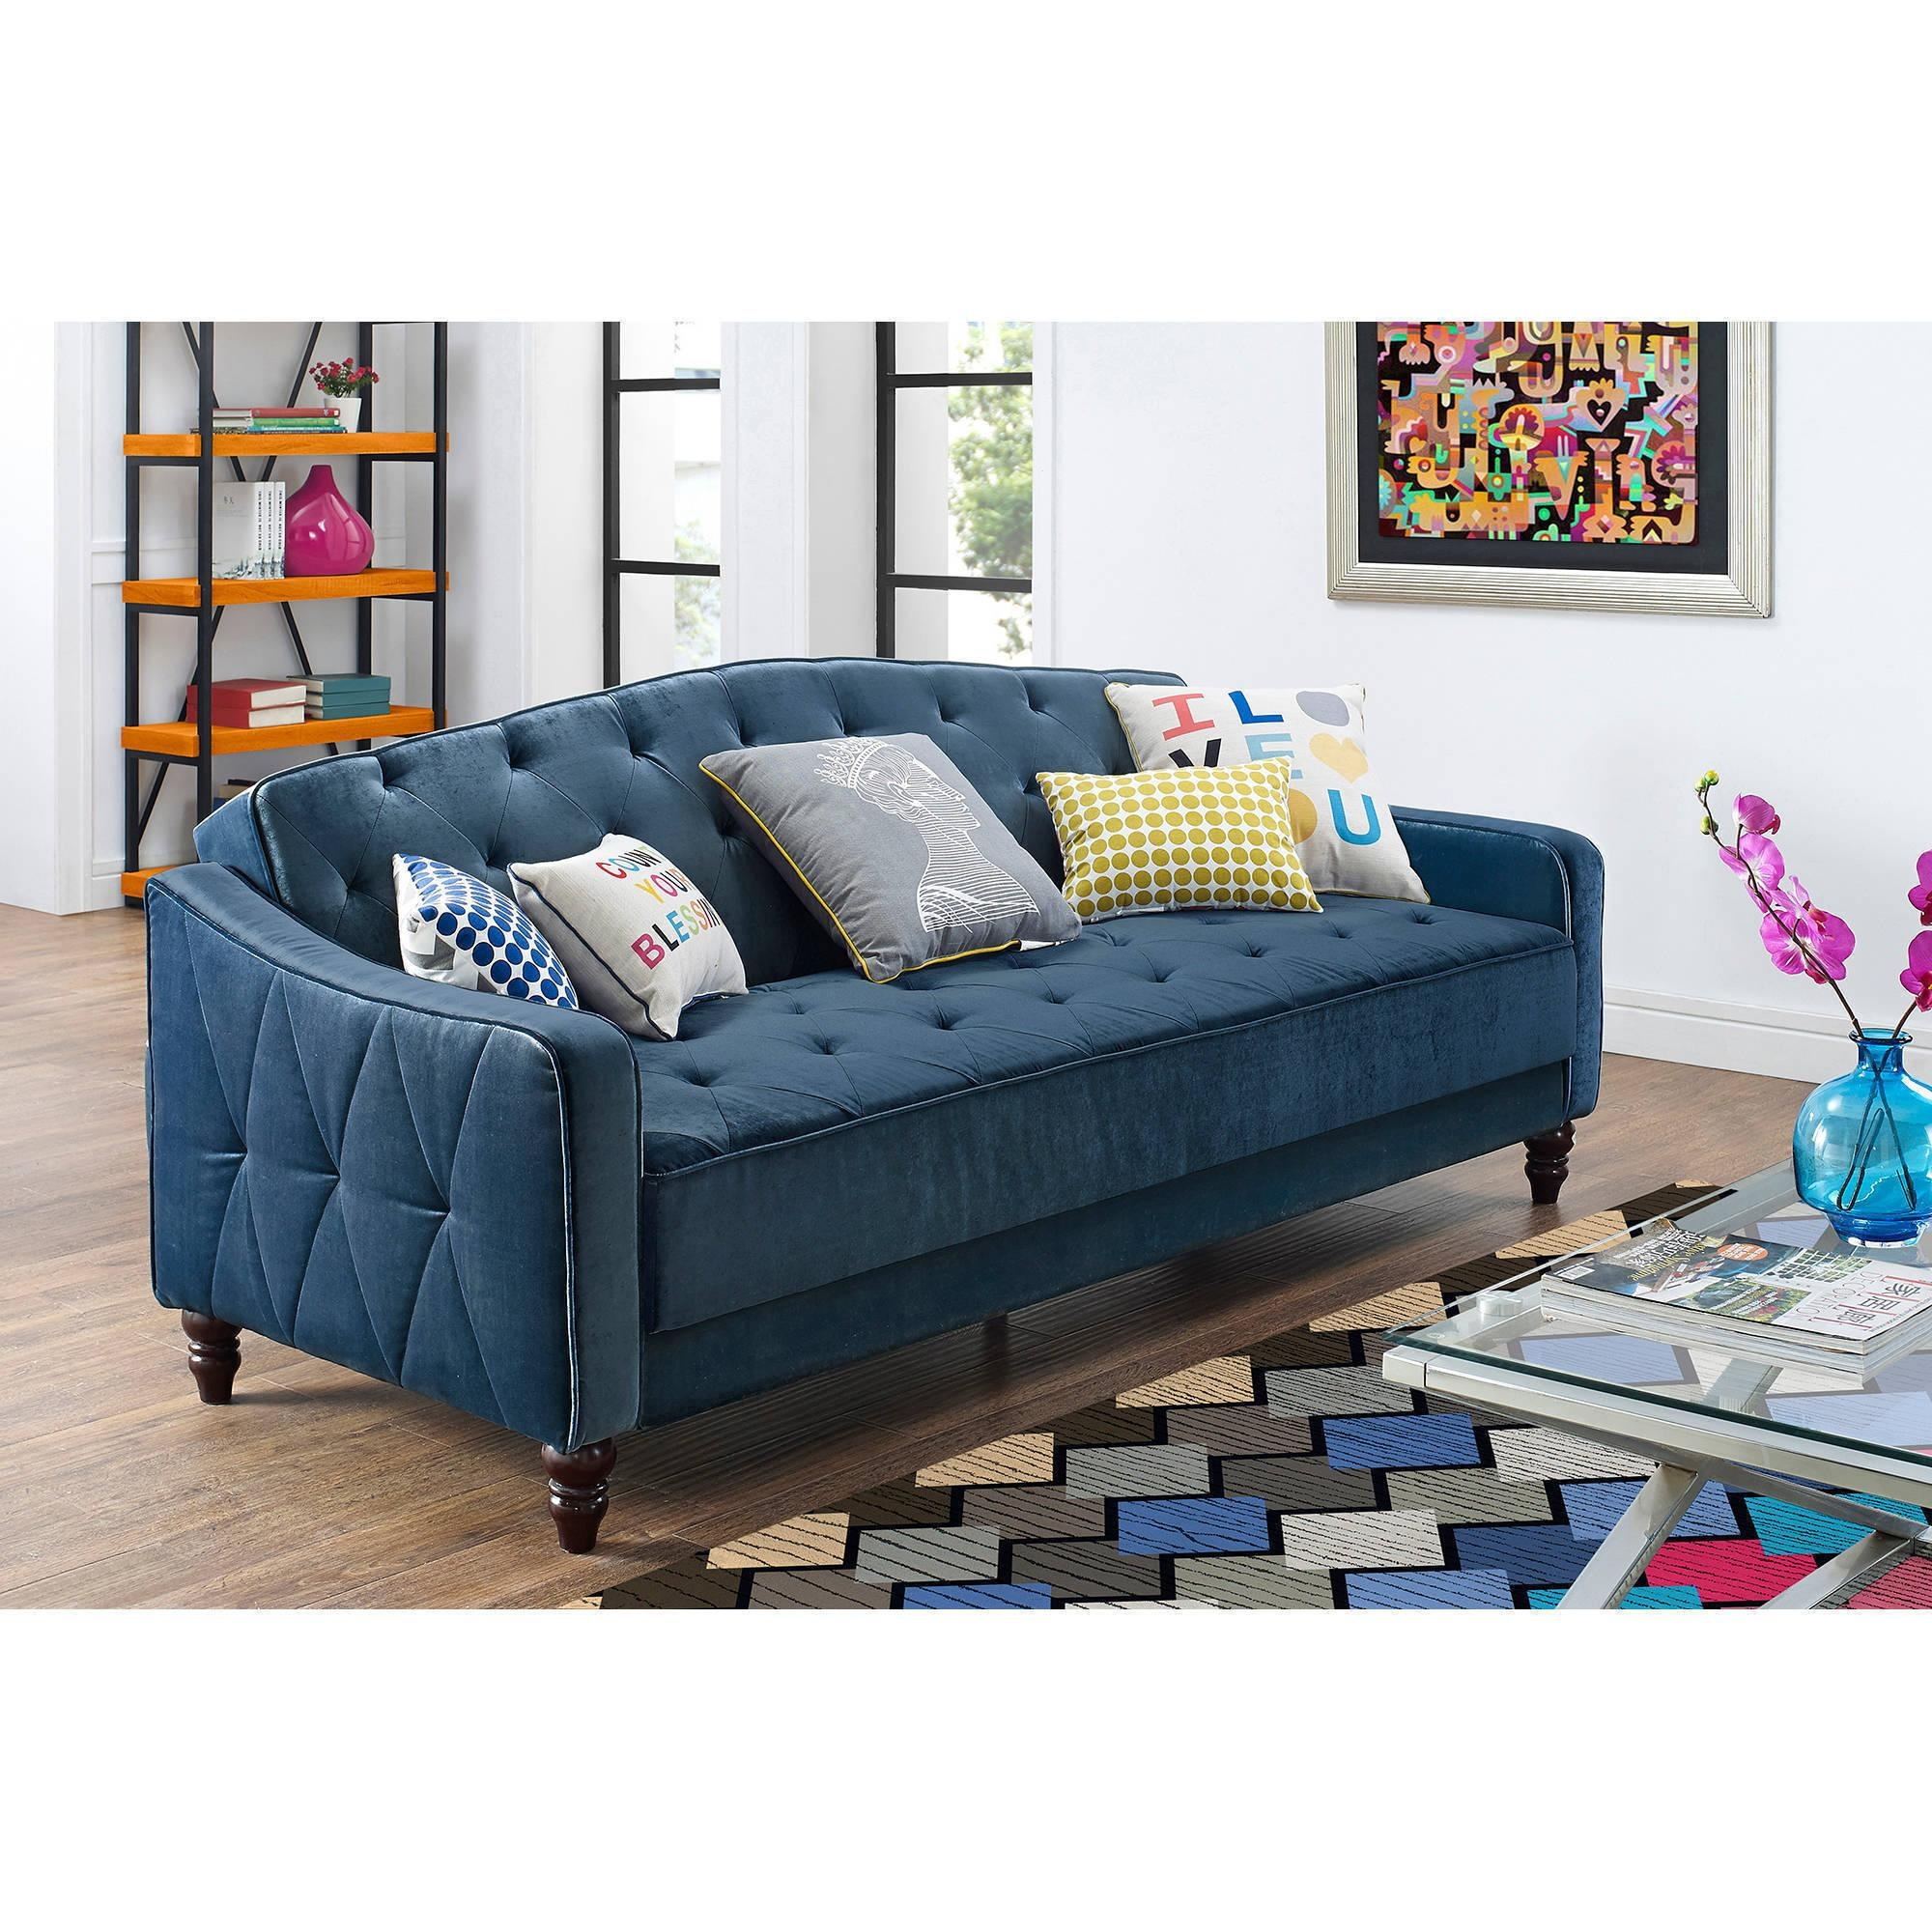 Coaster Company Black Accent Lounge Chair Futon Sofa Bed U2013 Walmart  Pertaining To Convertible Futon Sofa